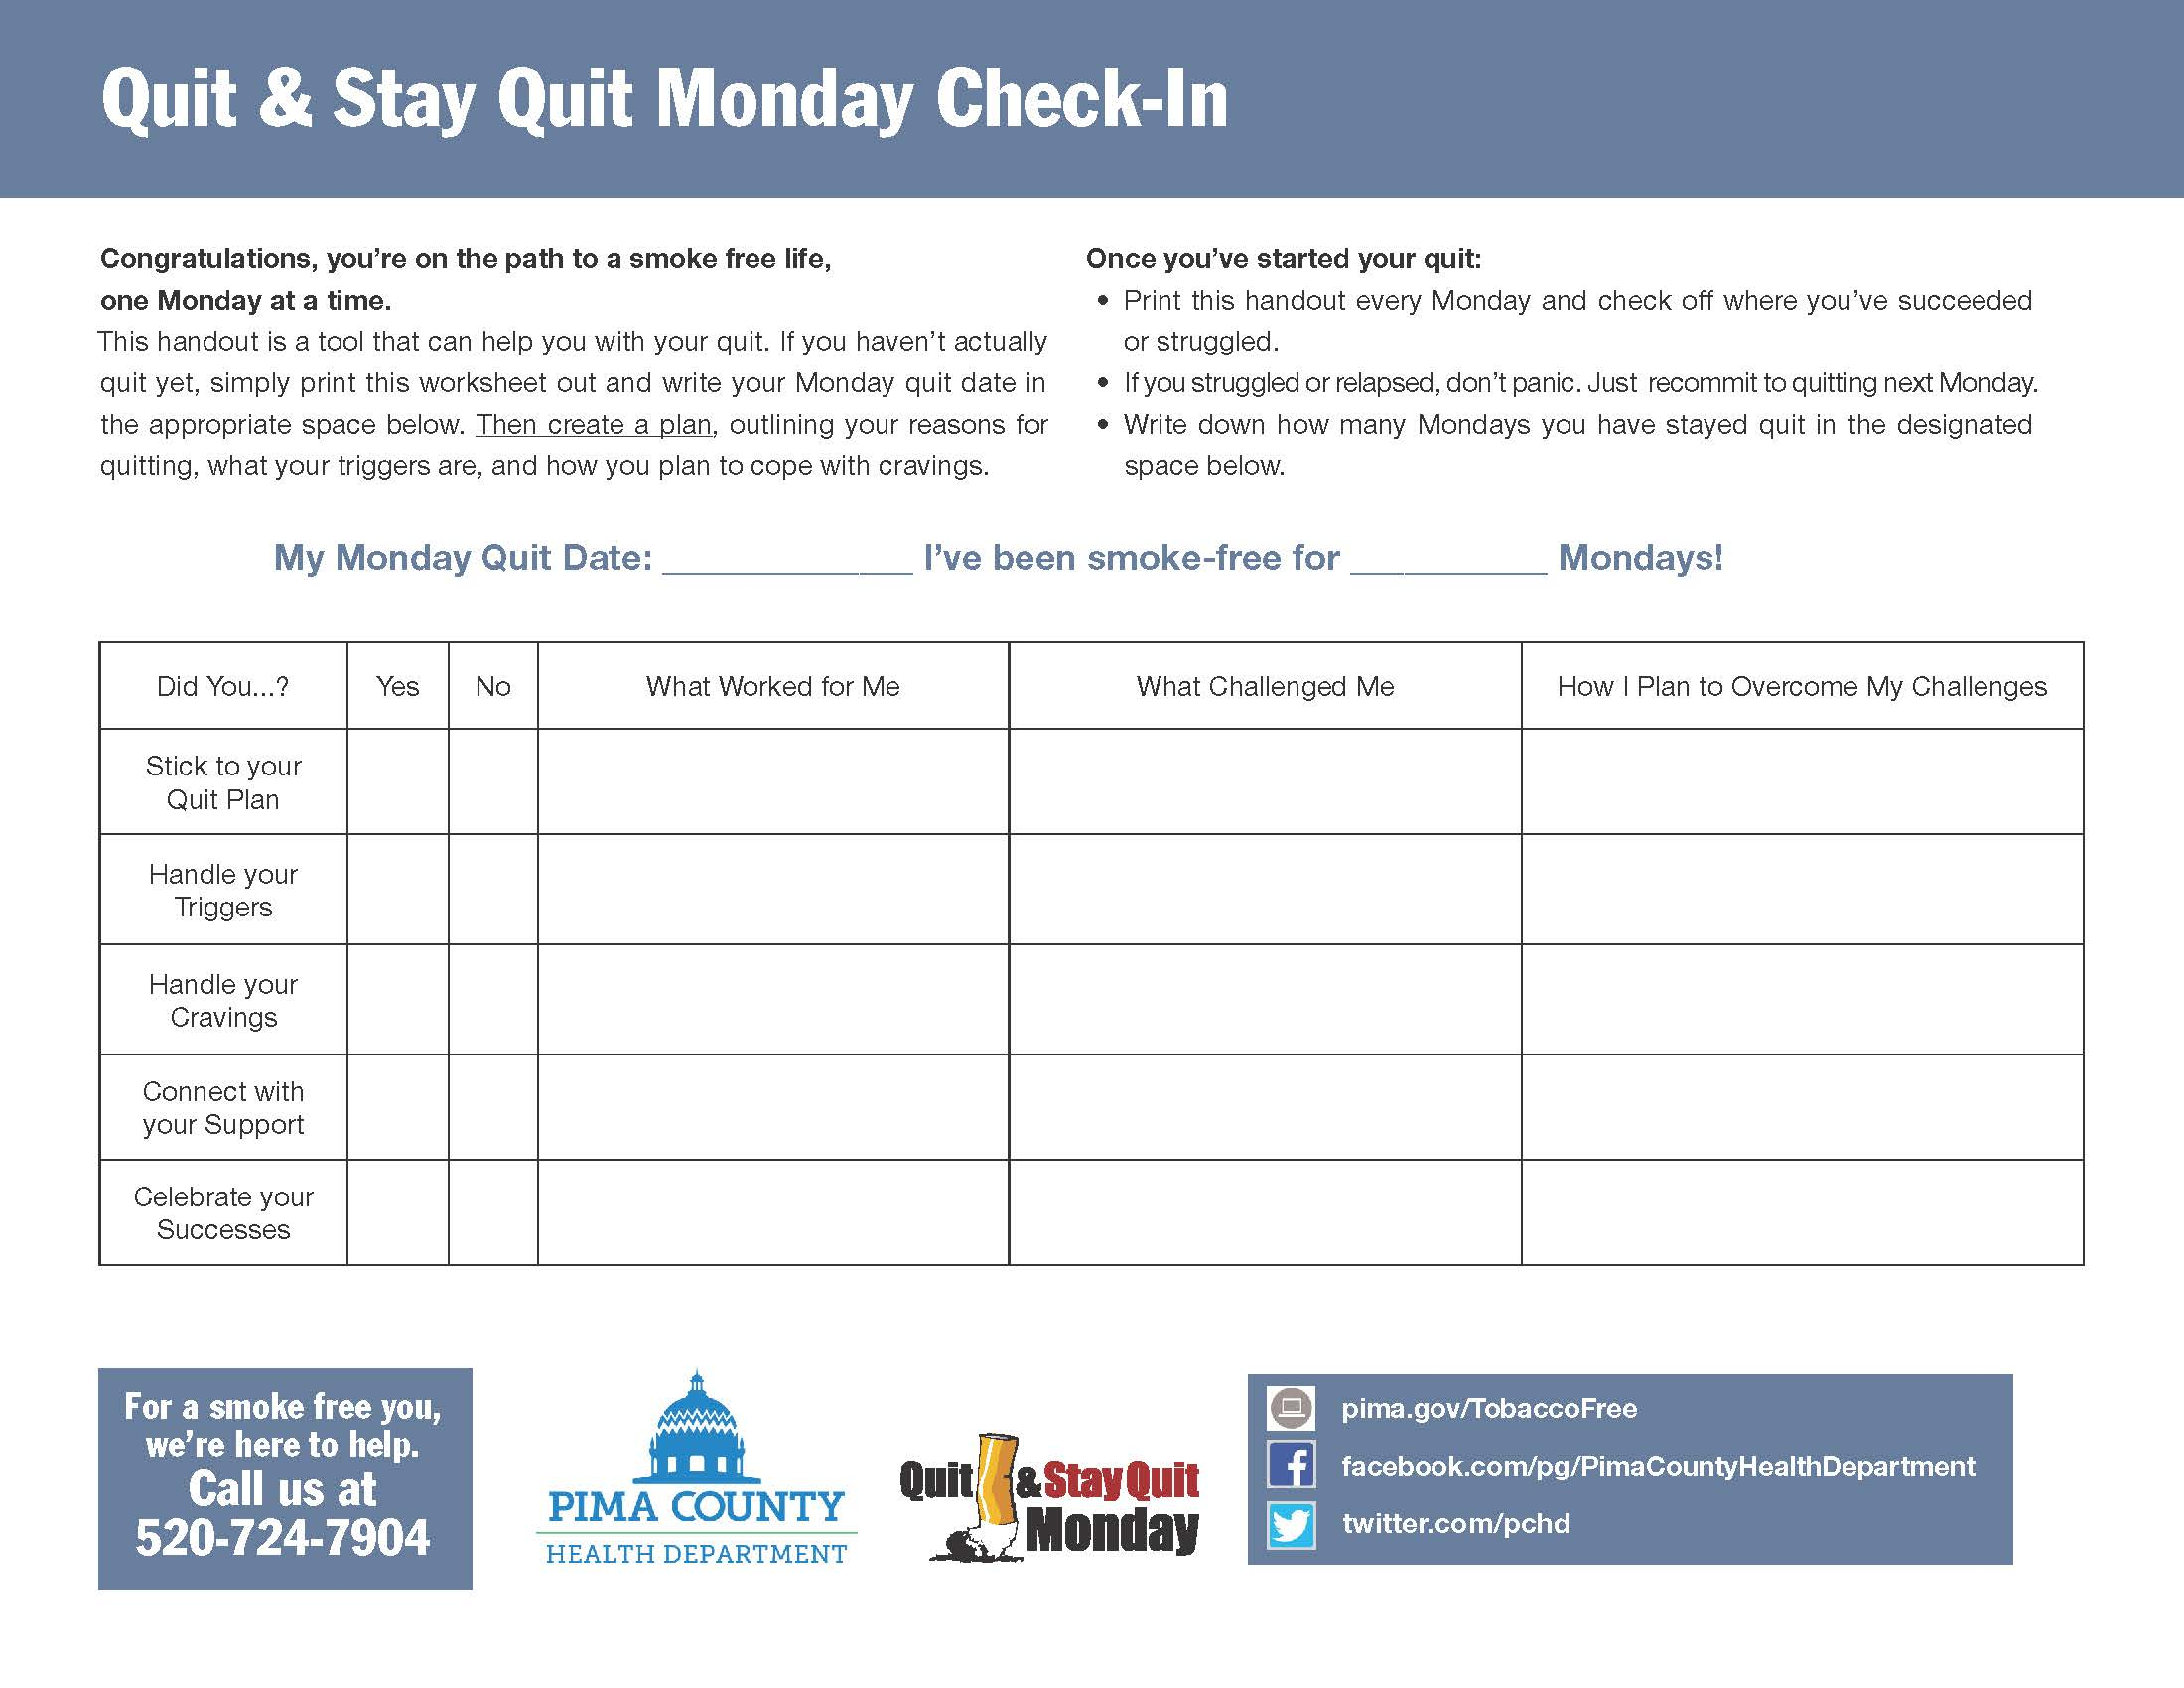 self check in sheet for quit and stay quit monday